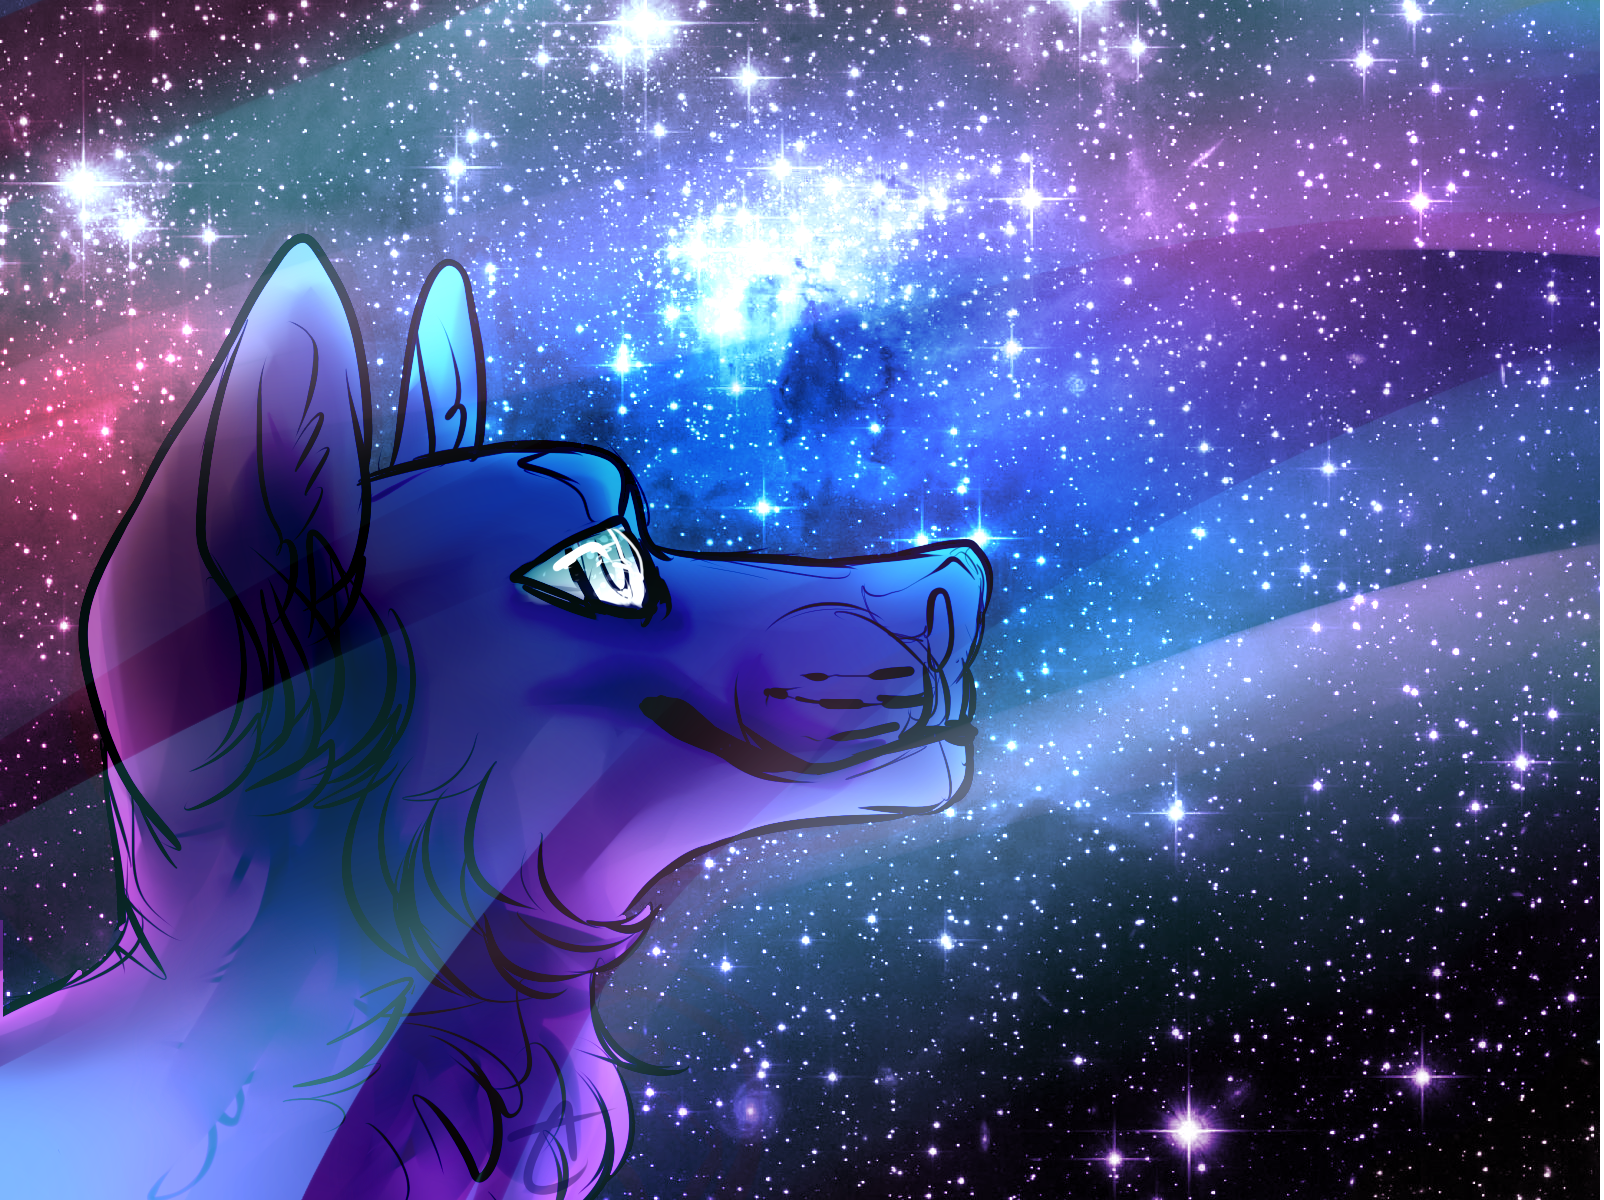 space_doggo_thing_by_crionym-dabawzq.png